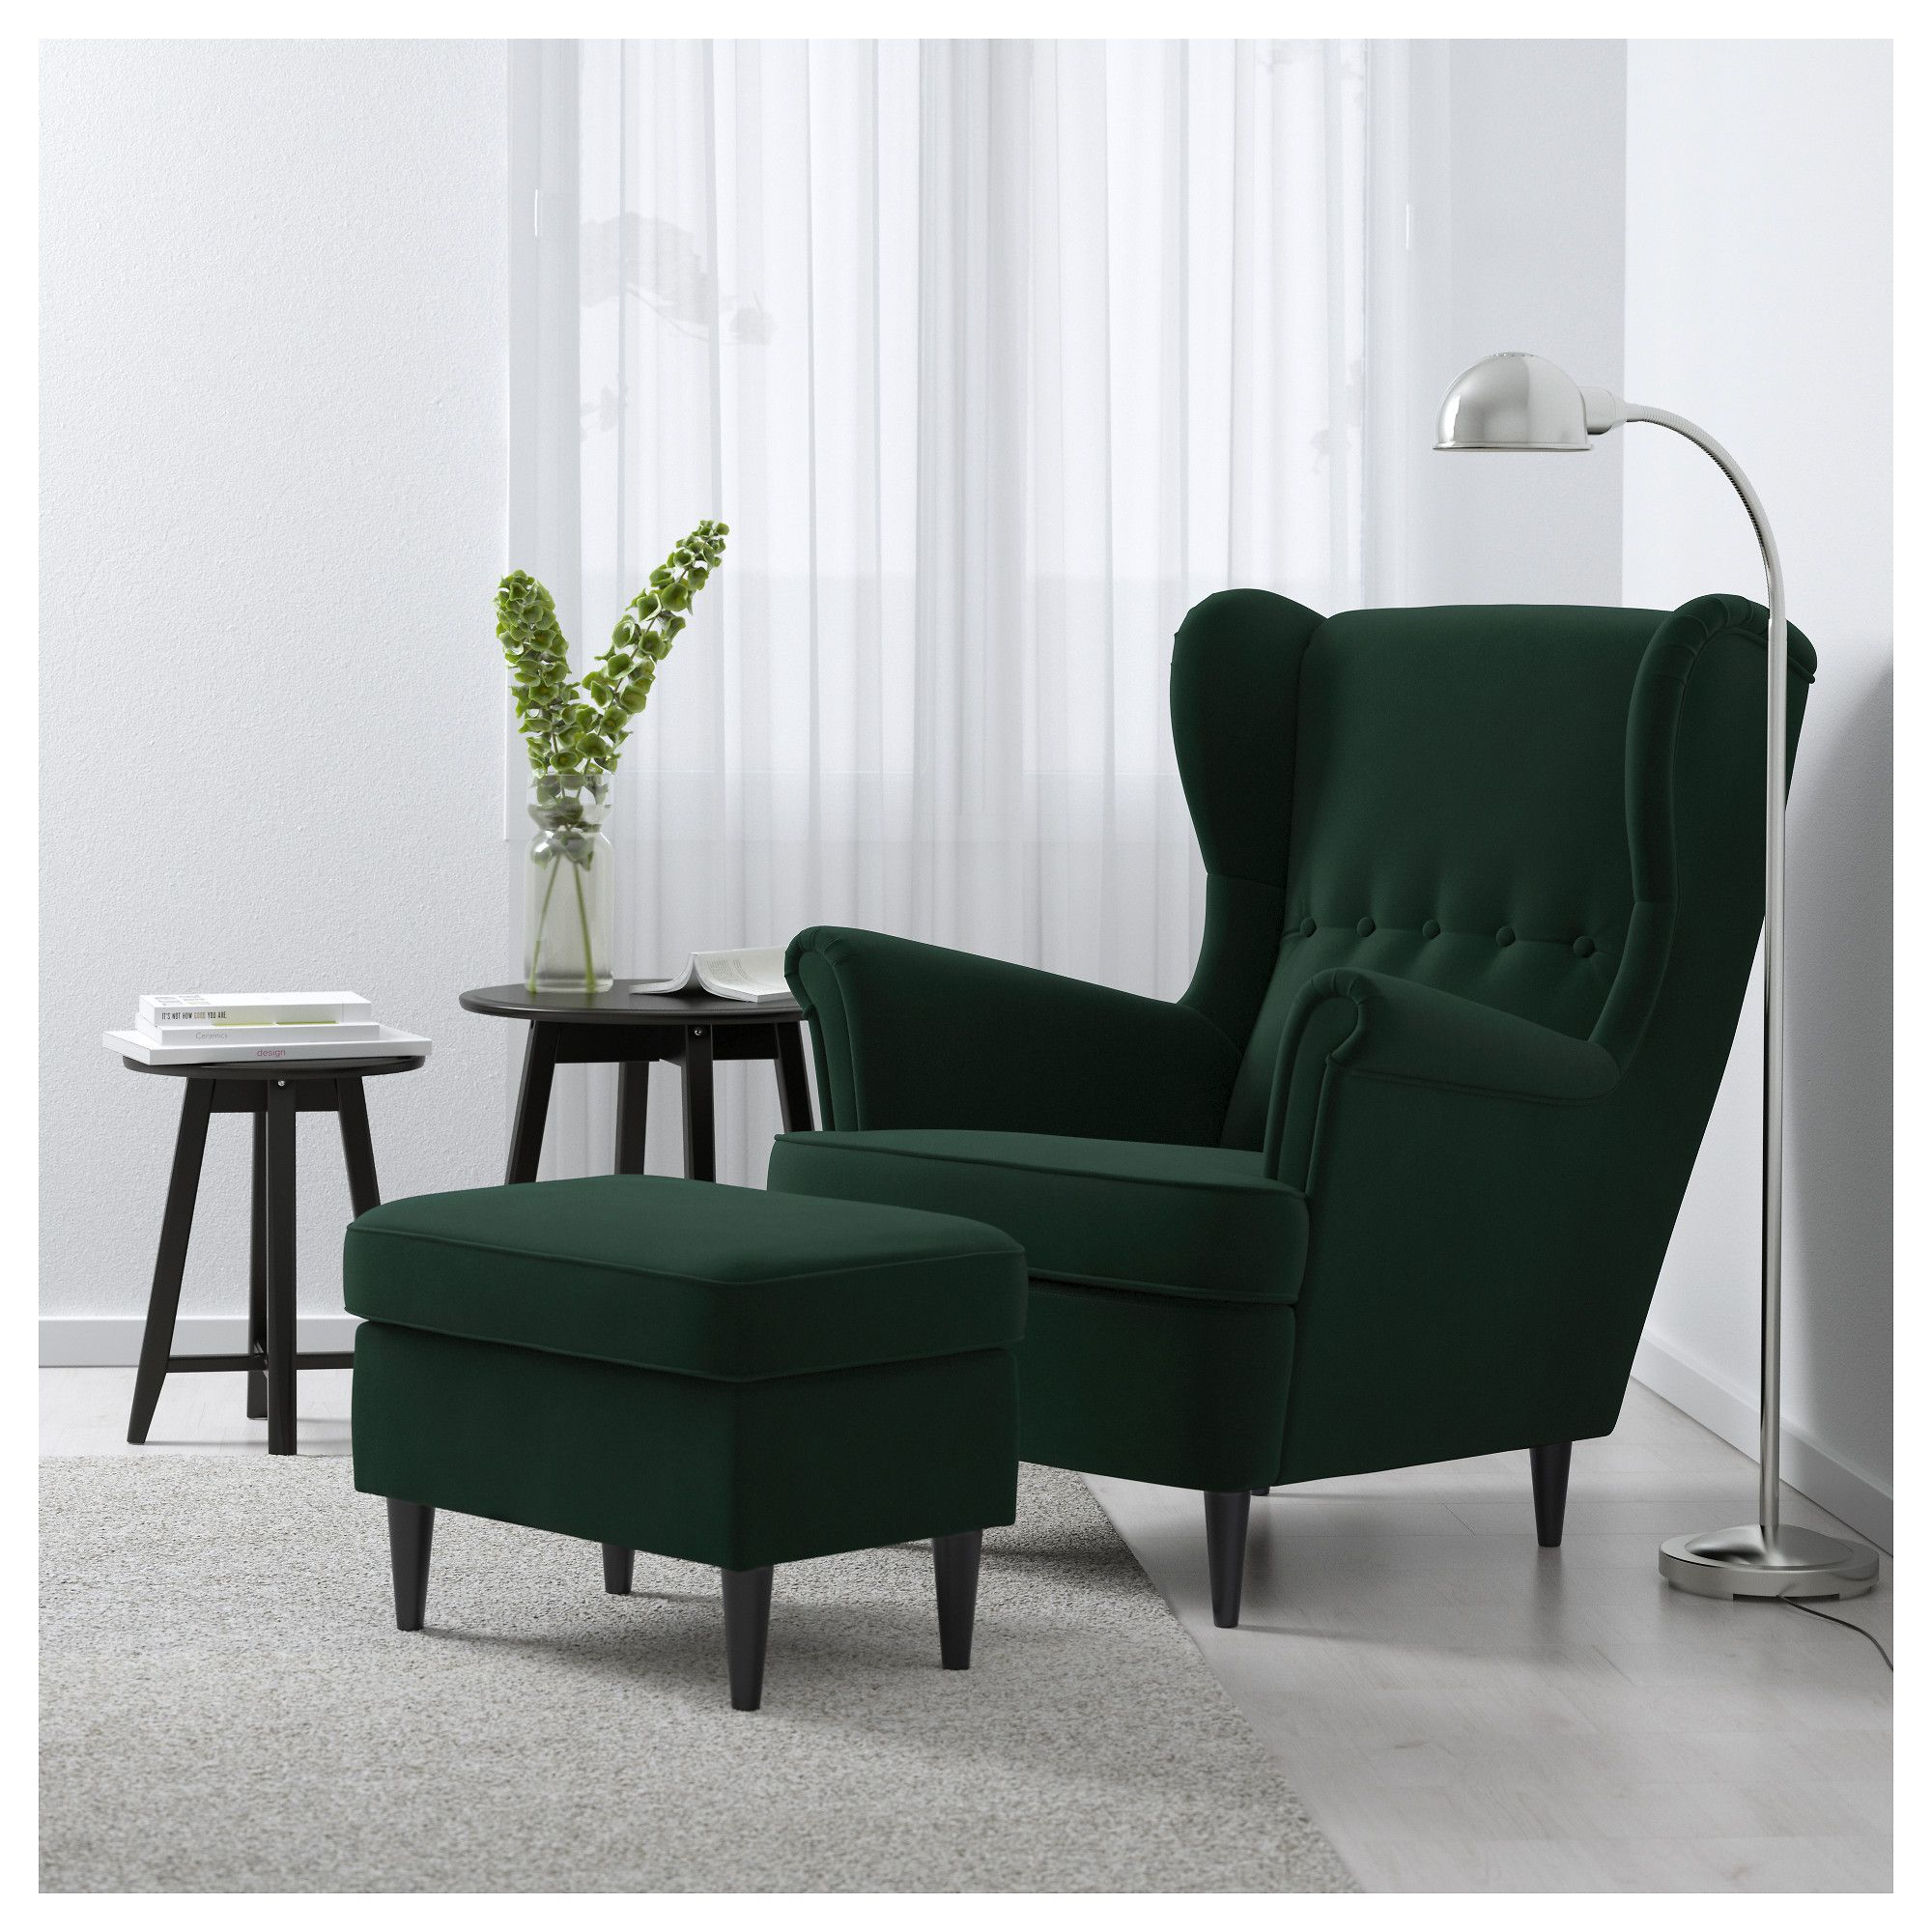 Furniture Home Furnishings Find Your Inspiration Turquoise Living Room Decor Wing Chair Ikea Chair